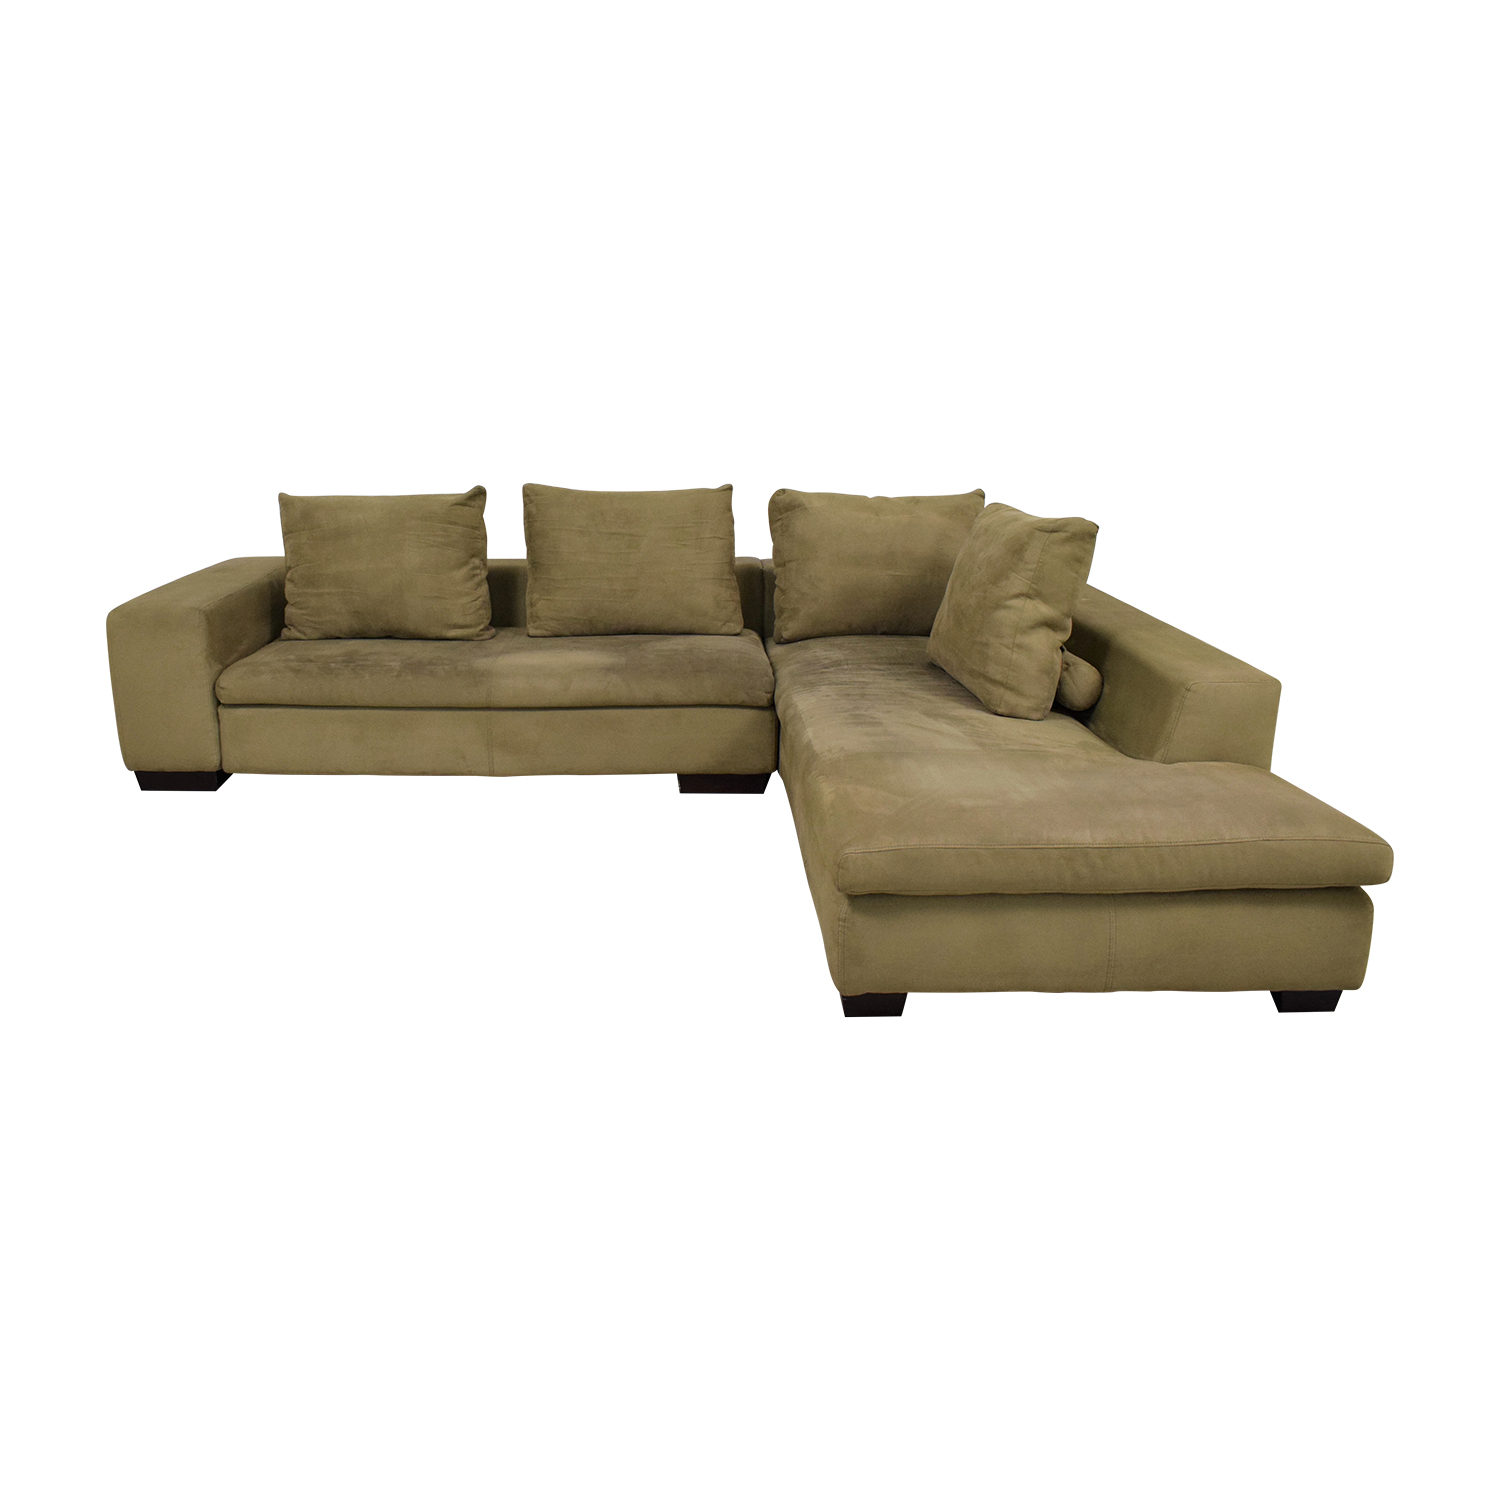 ABC Carpet & Home ABC Carpet & Home Sectional used